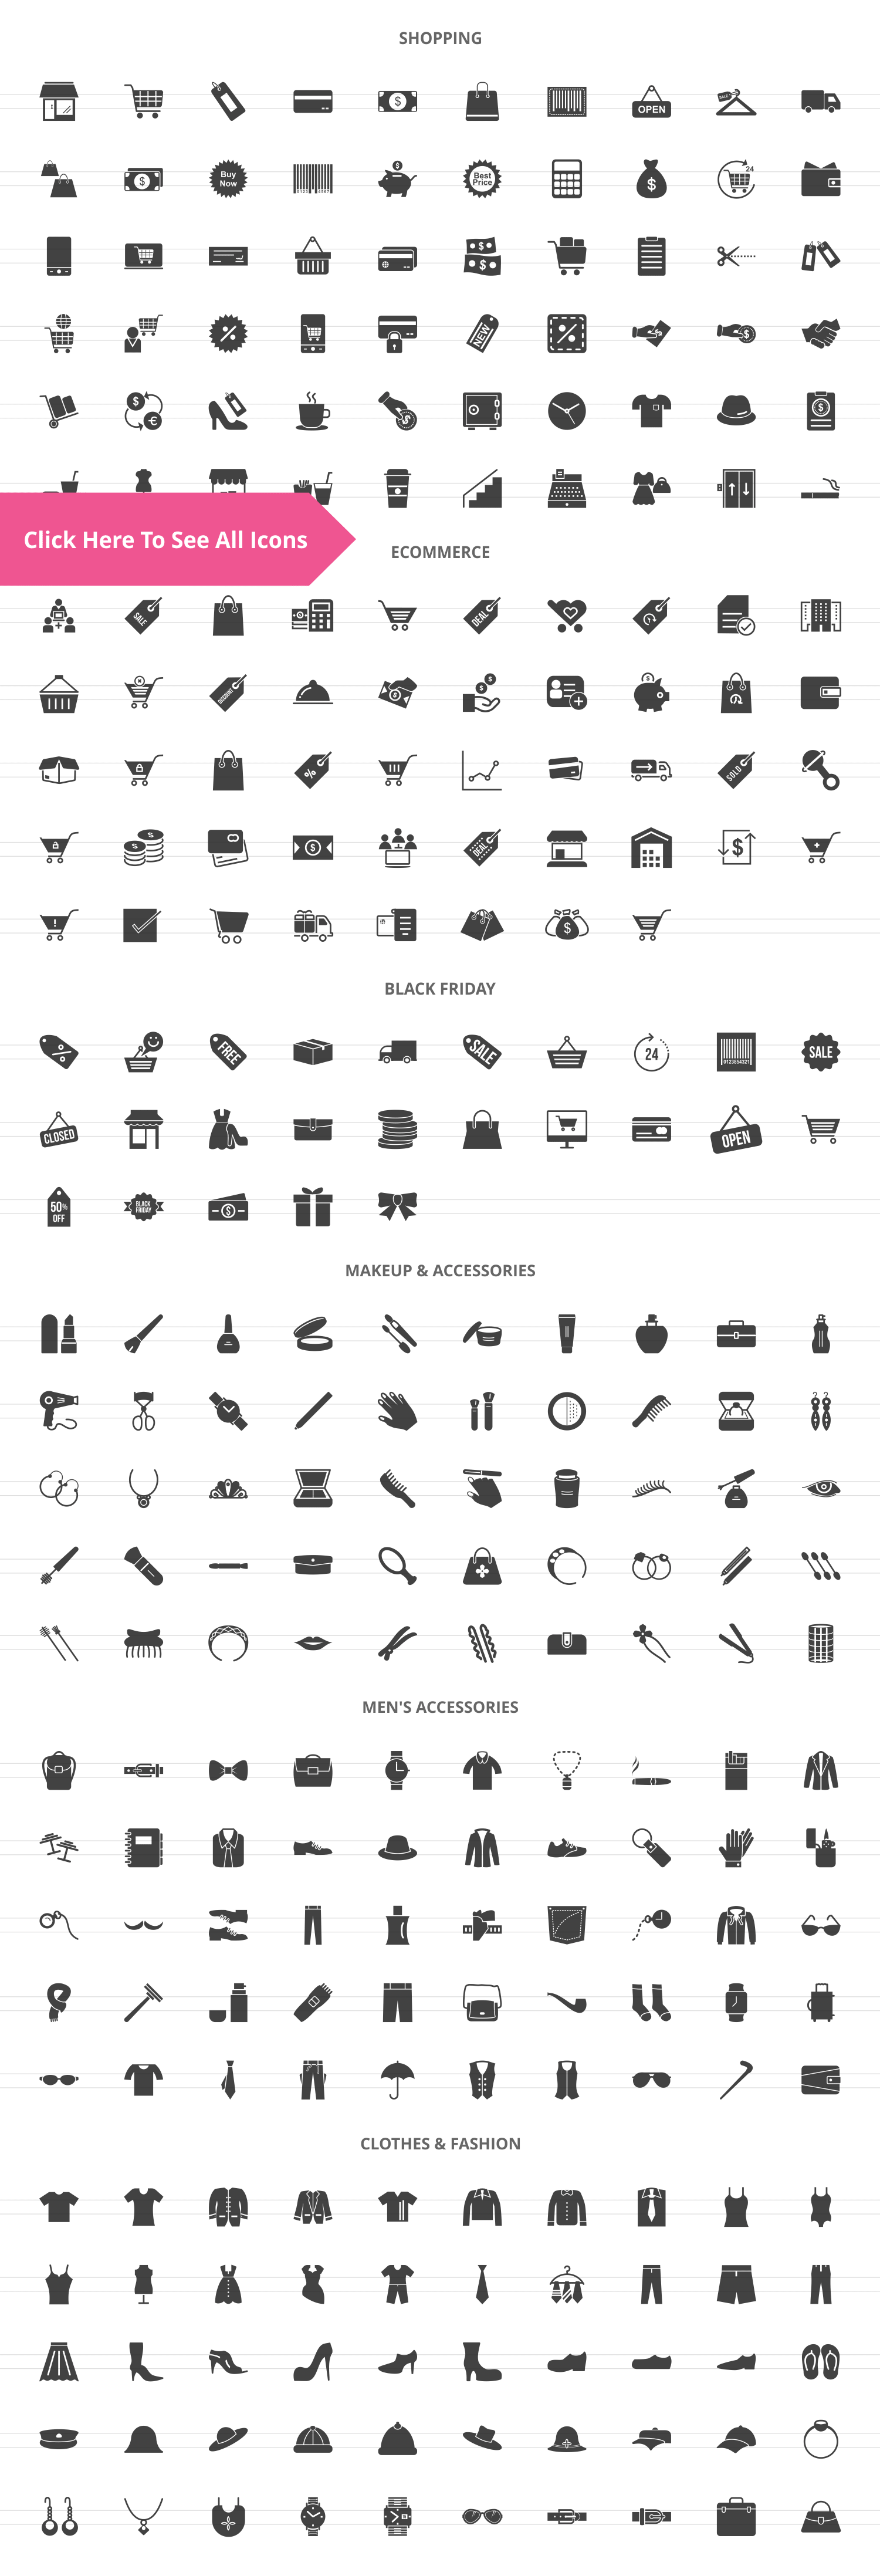 283 Shopping Glyph Icons example image 2